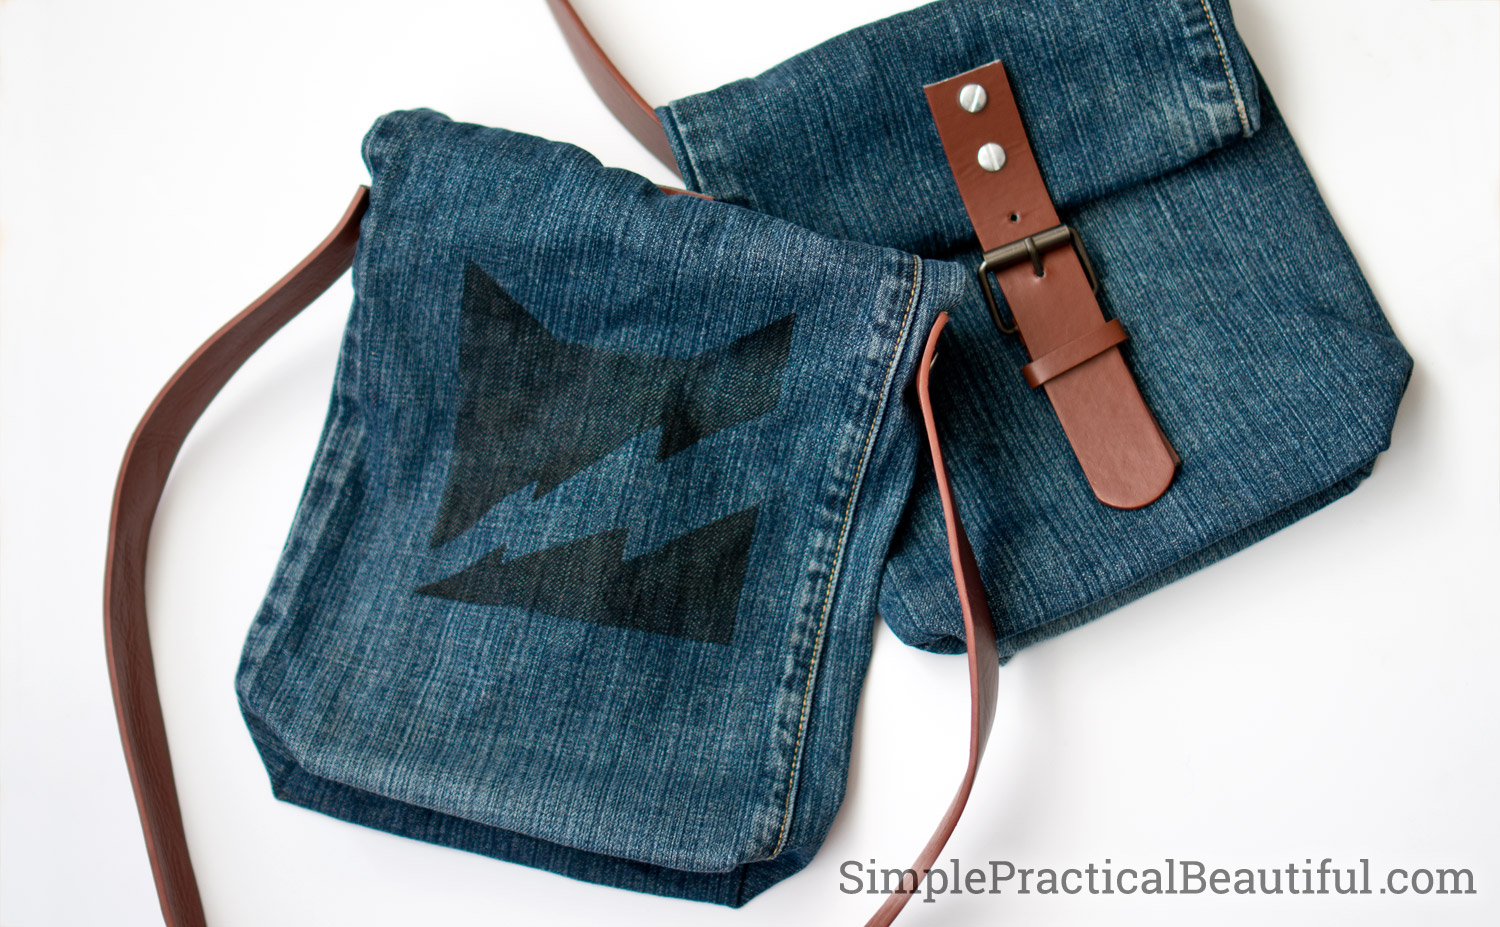 Add a design detail to your DIY jean purse like this warrior cats thunder clan logo